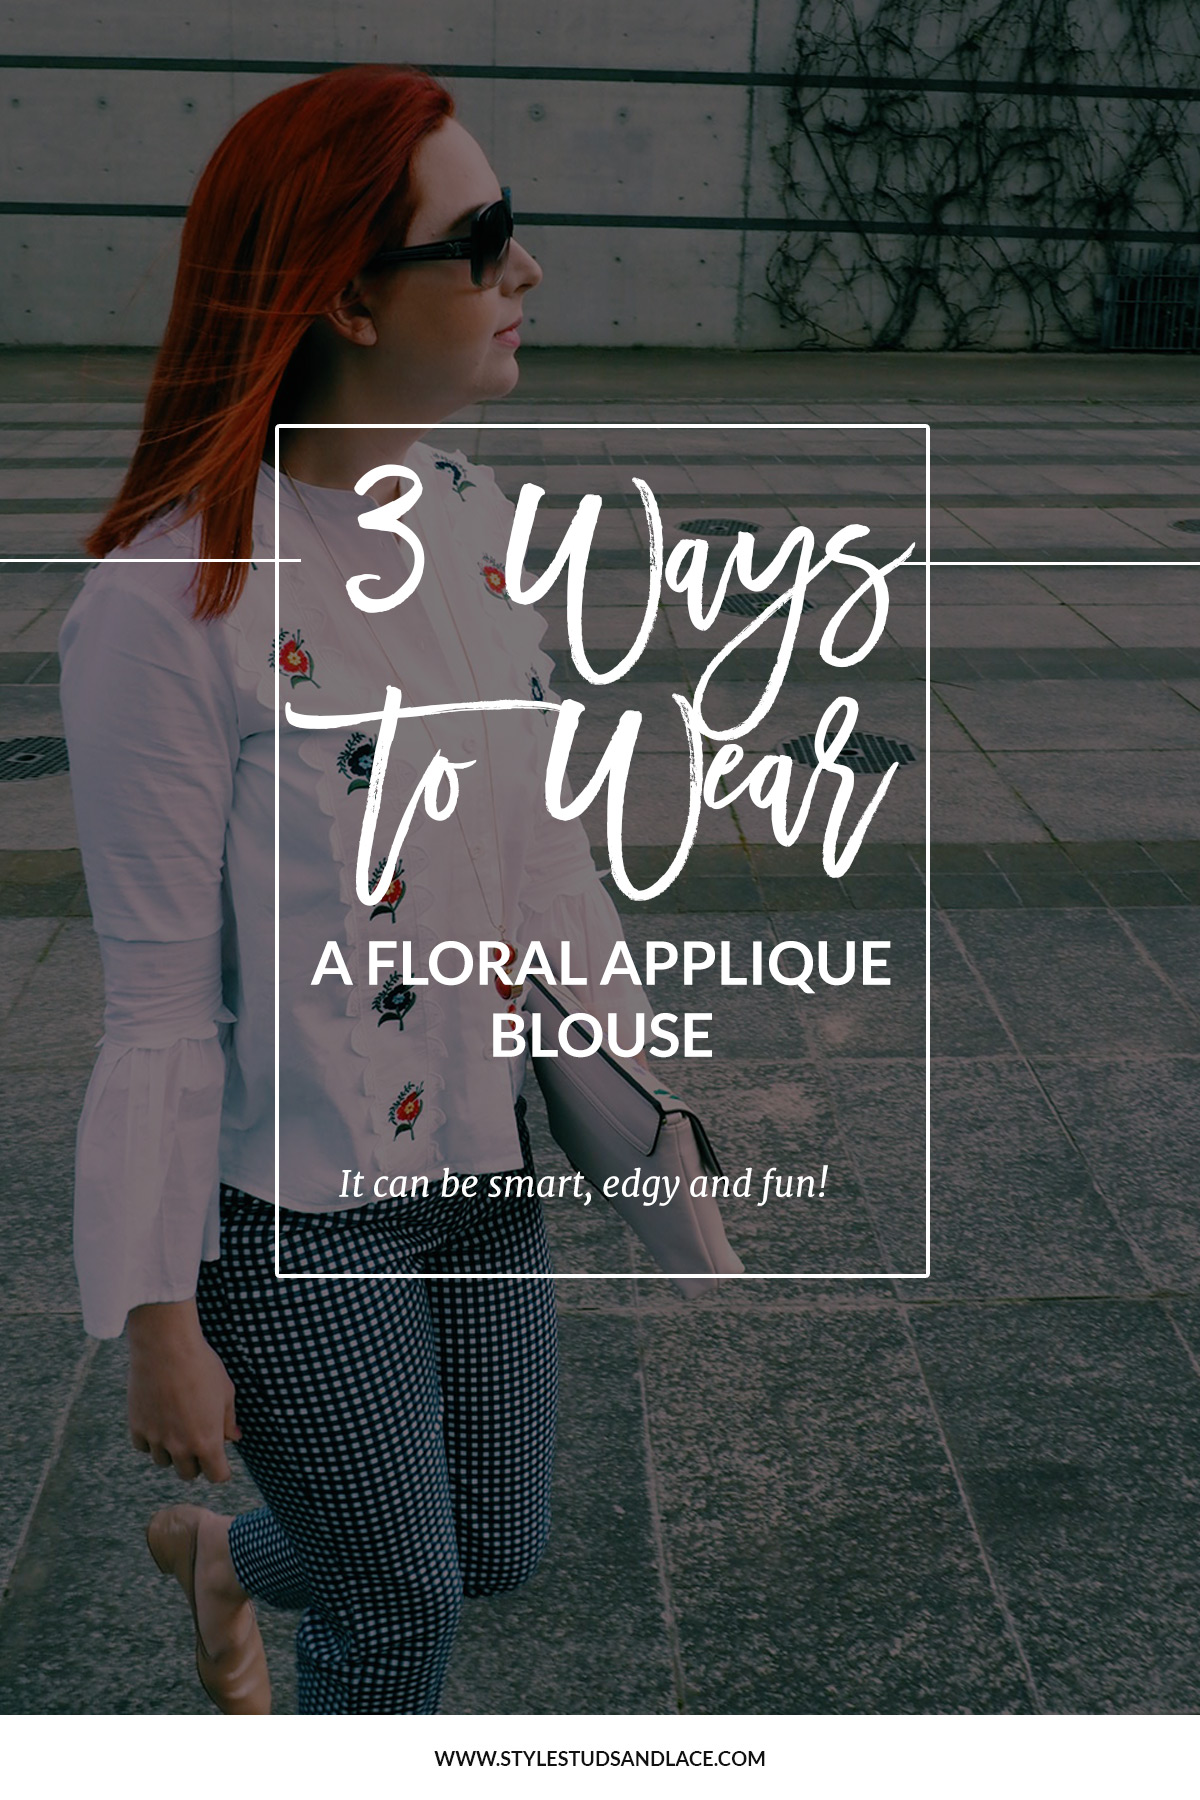 3 great ways to wear a floral, applique, blouse | they don't just have to be girly, an embroidered button up can be edgy, smart and fun, women, work wear, day wear, party, over 30, white button up, shirt